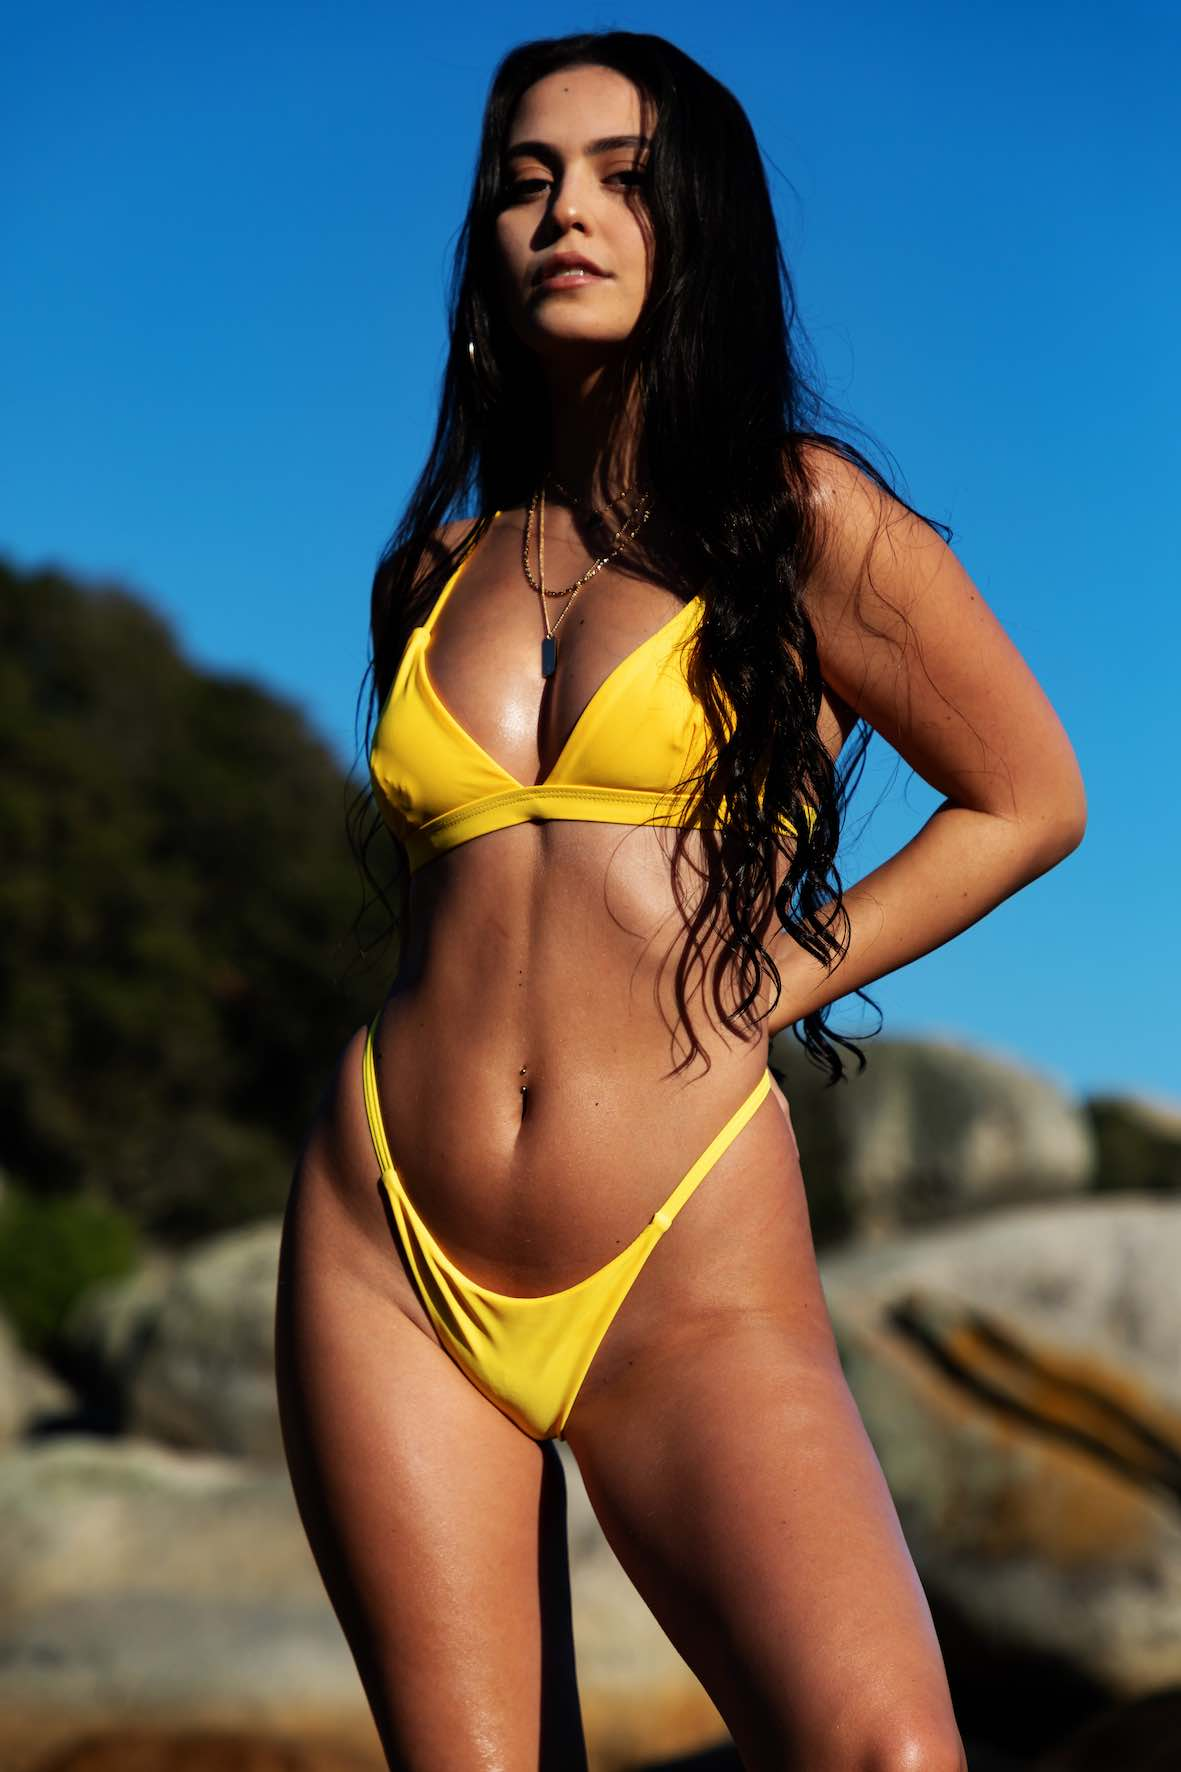 Meet Mai Sayag in our South African Babes feature